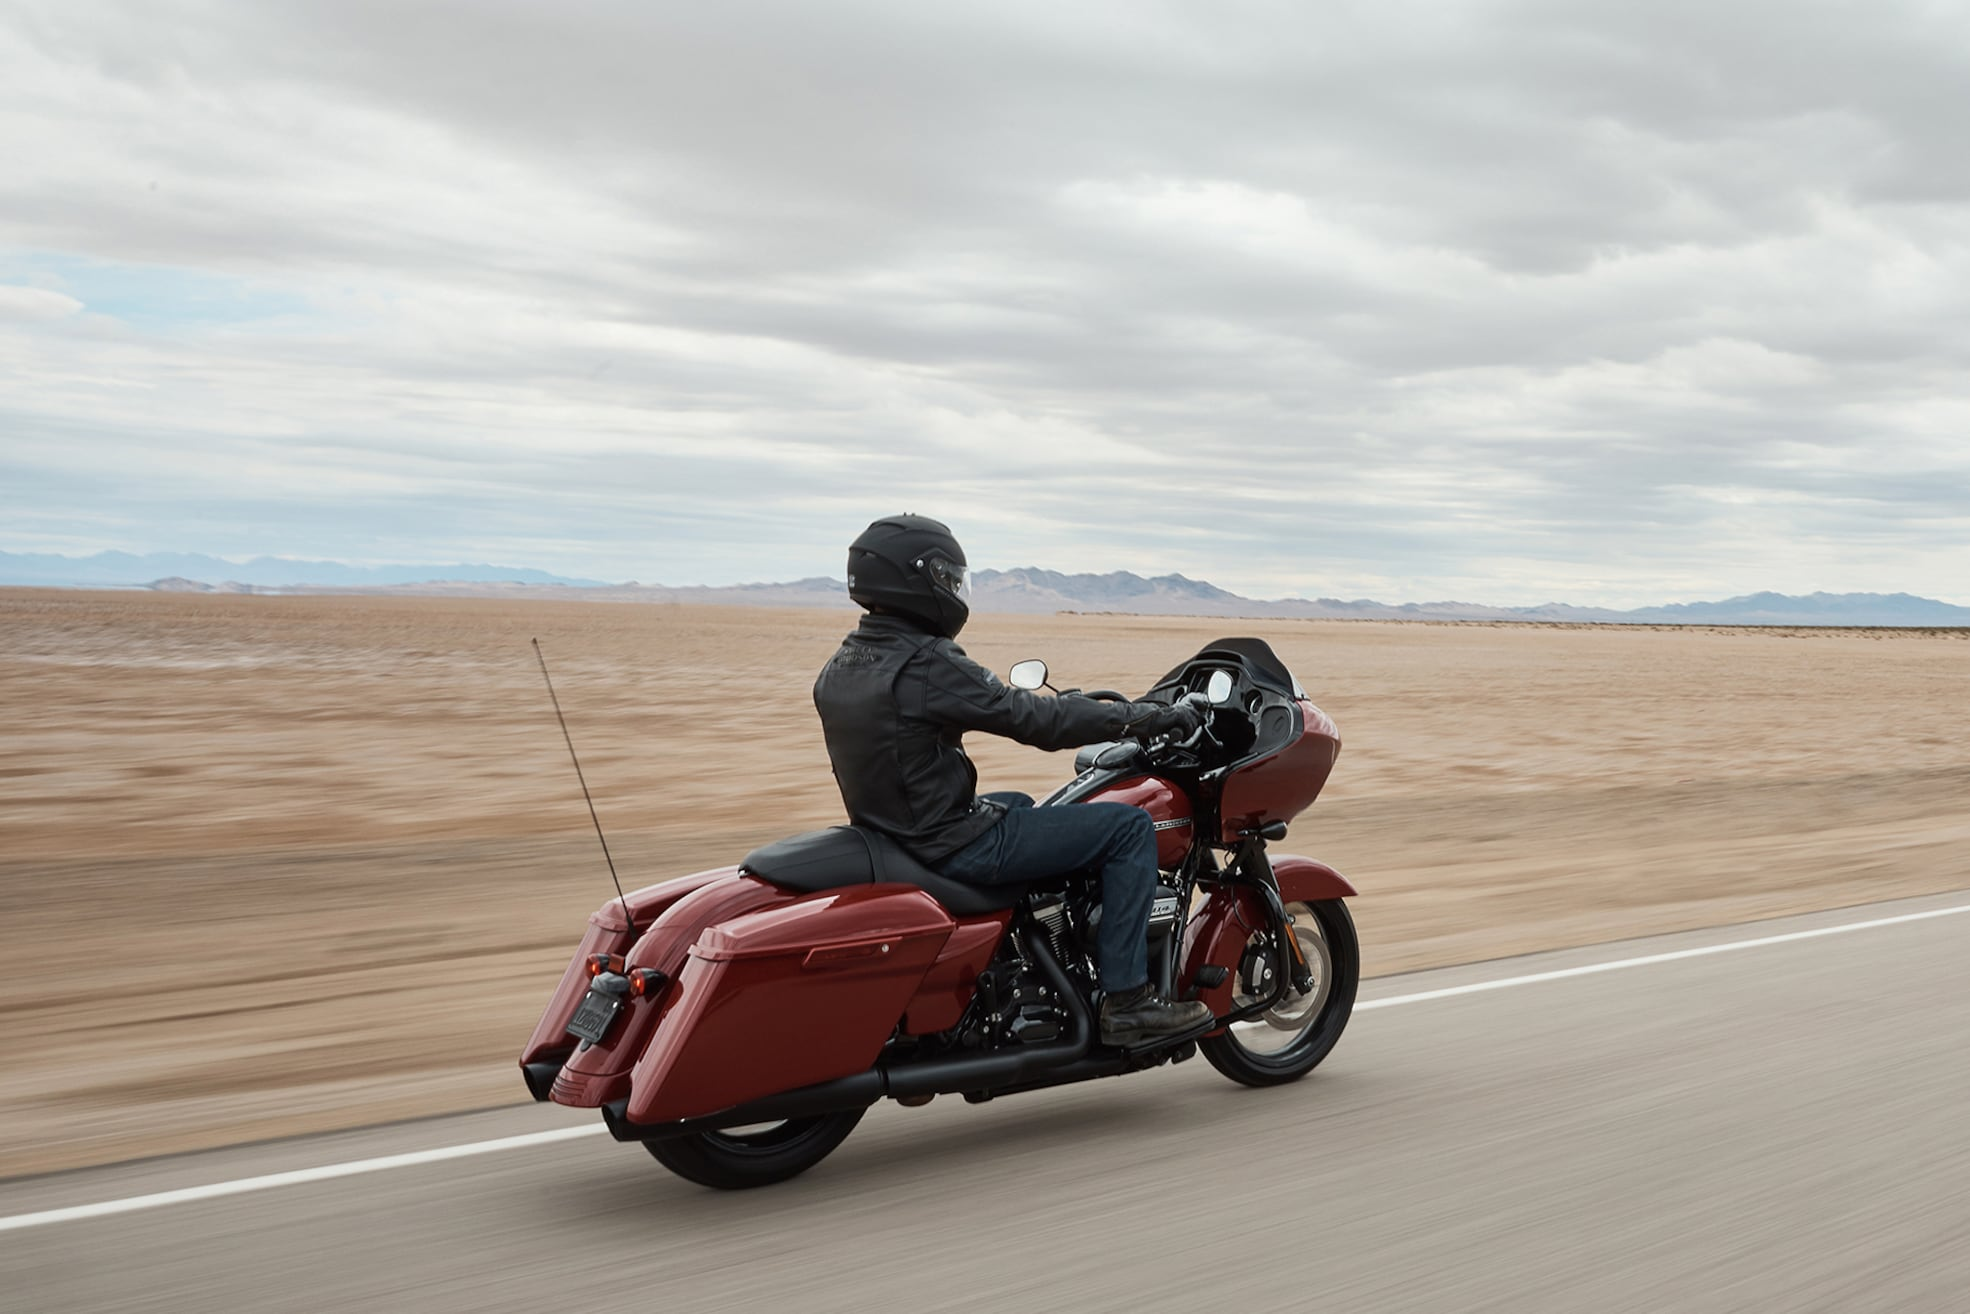 Person riding 2020 Road Glide Special motorcycle